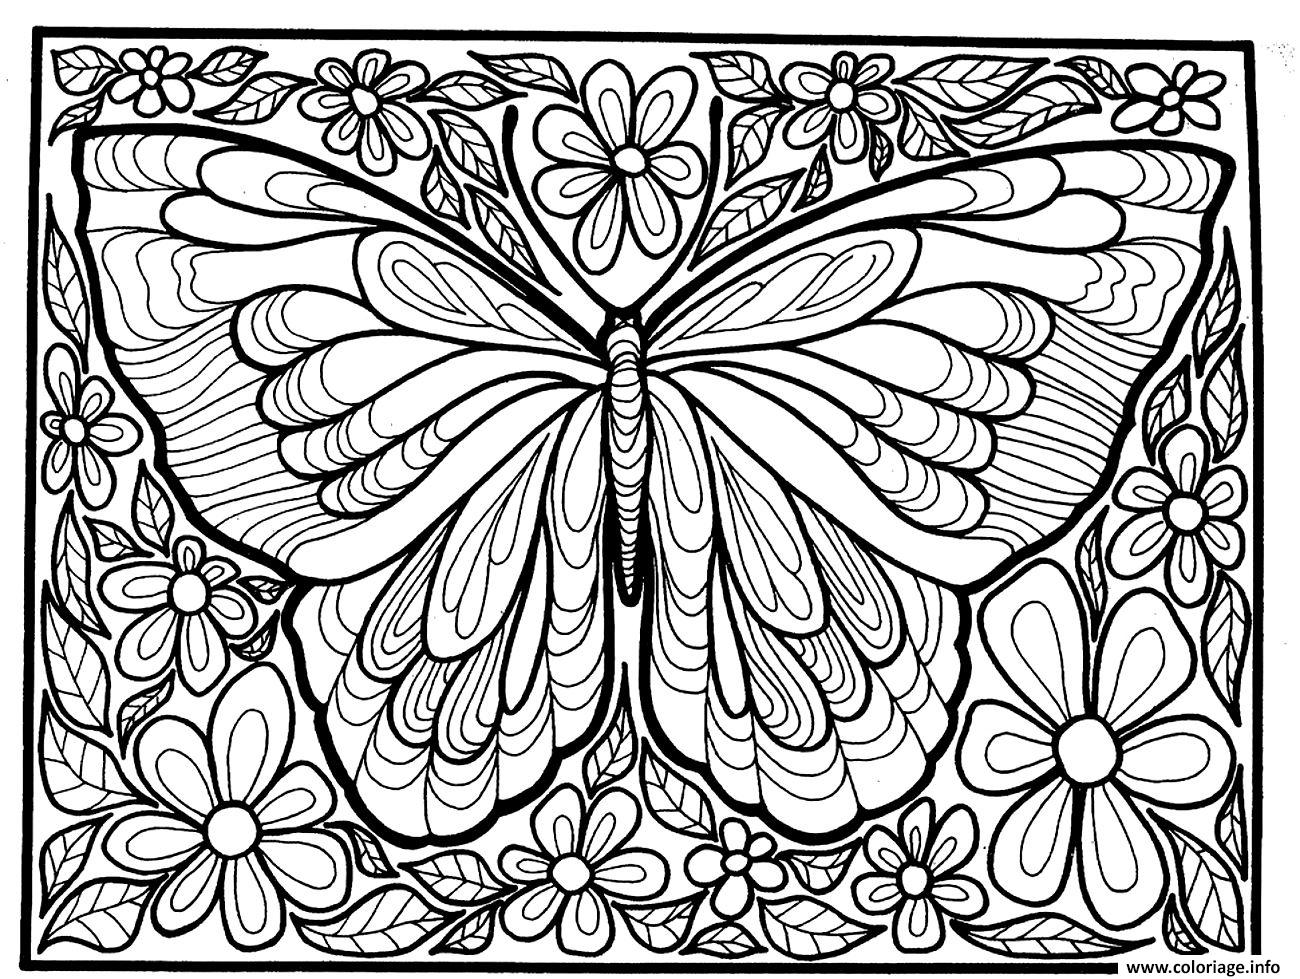 Coloriage adulte difficile grand papillon dessin - Grand dessin a colorier ...